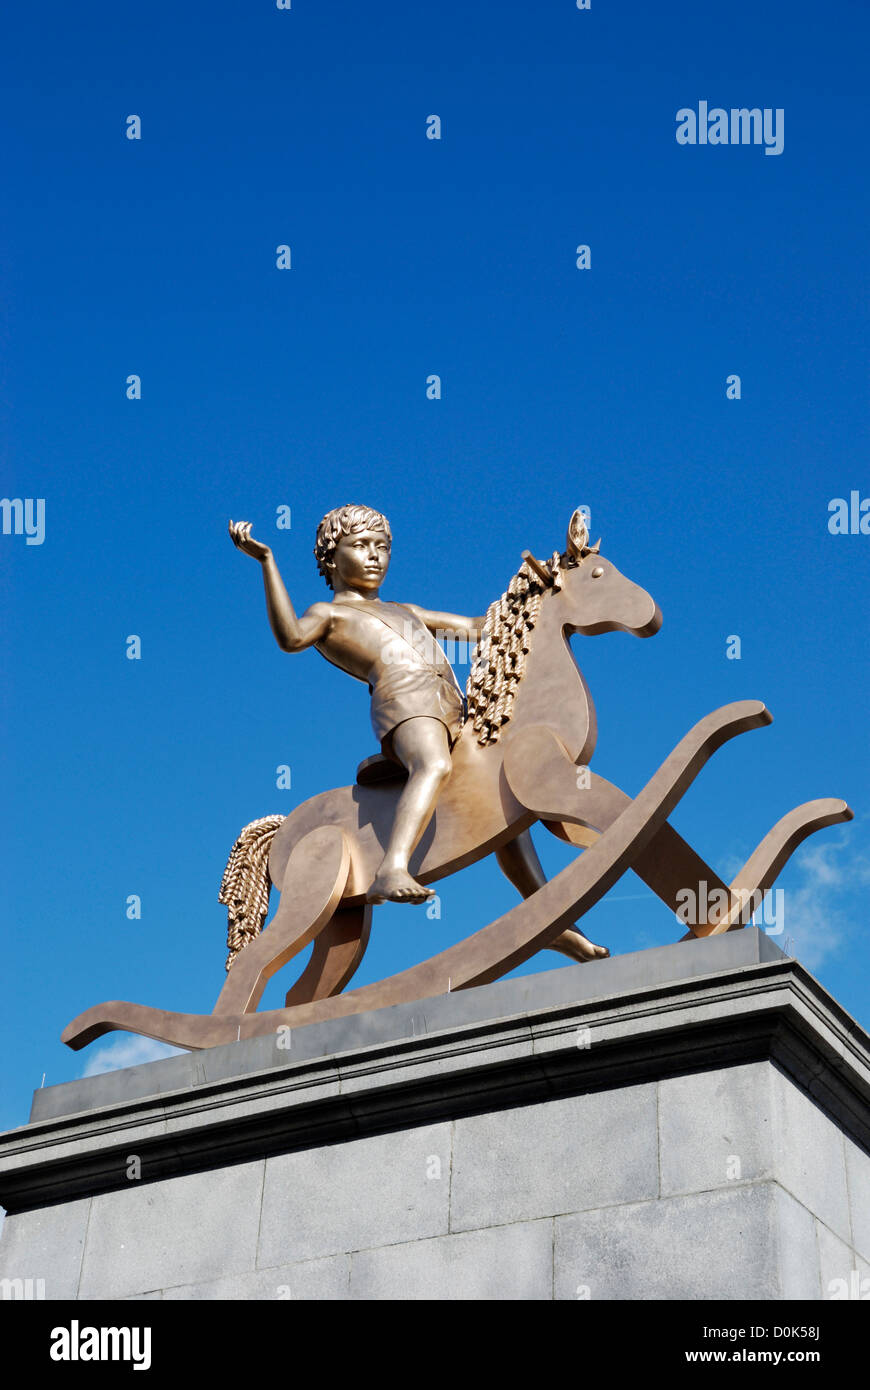 Fourth plinth statue Powerless Structures by Elmgreen and Dragset. - Stock Image